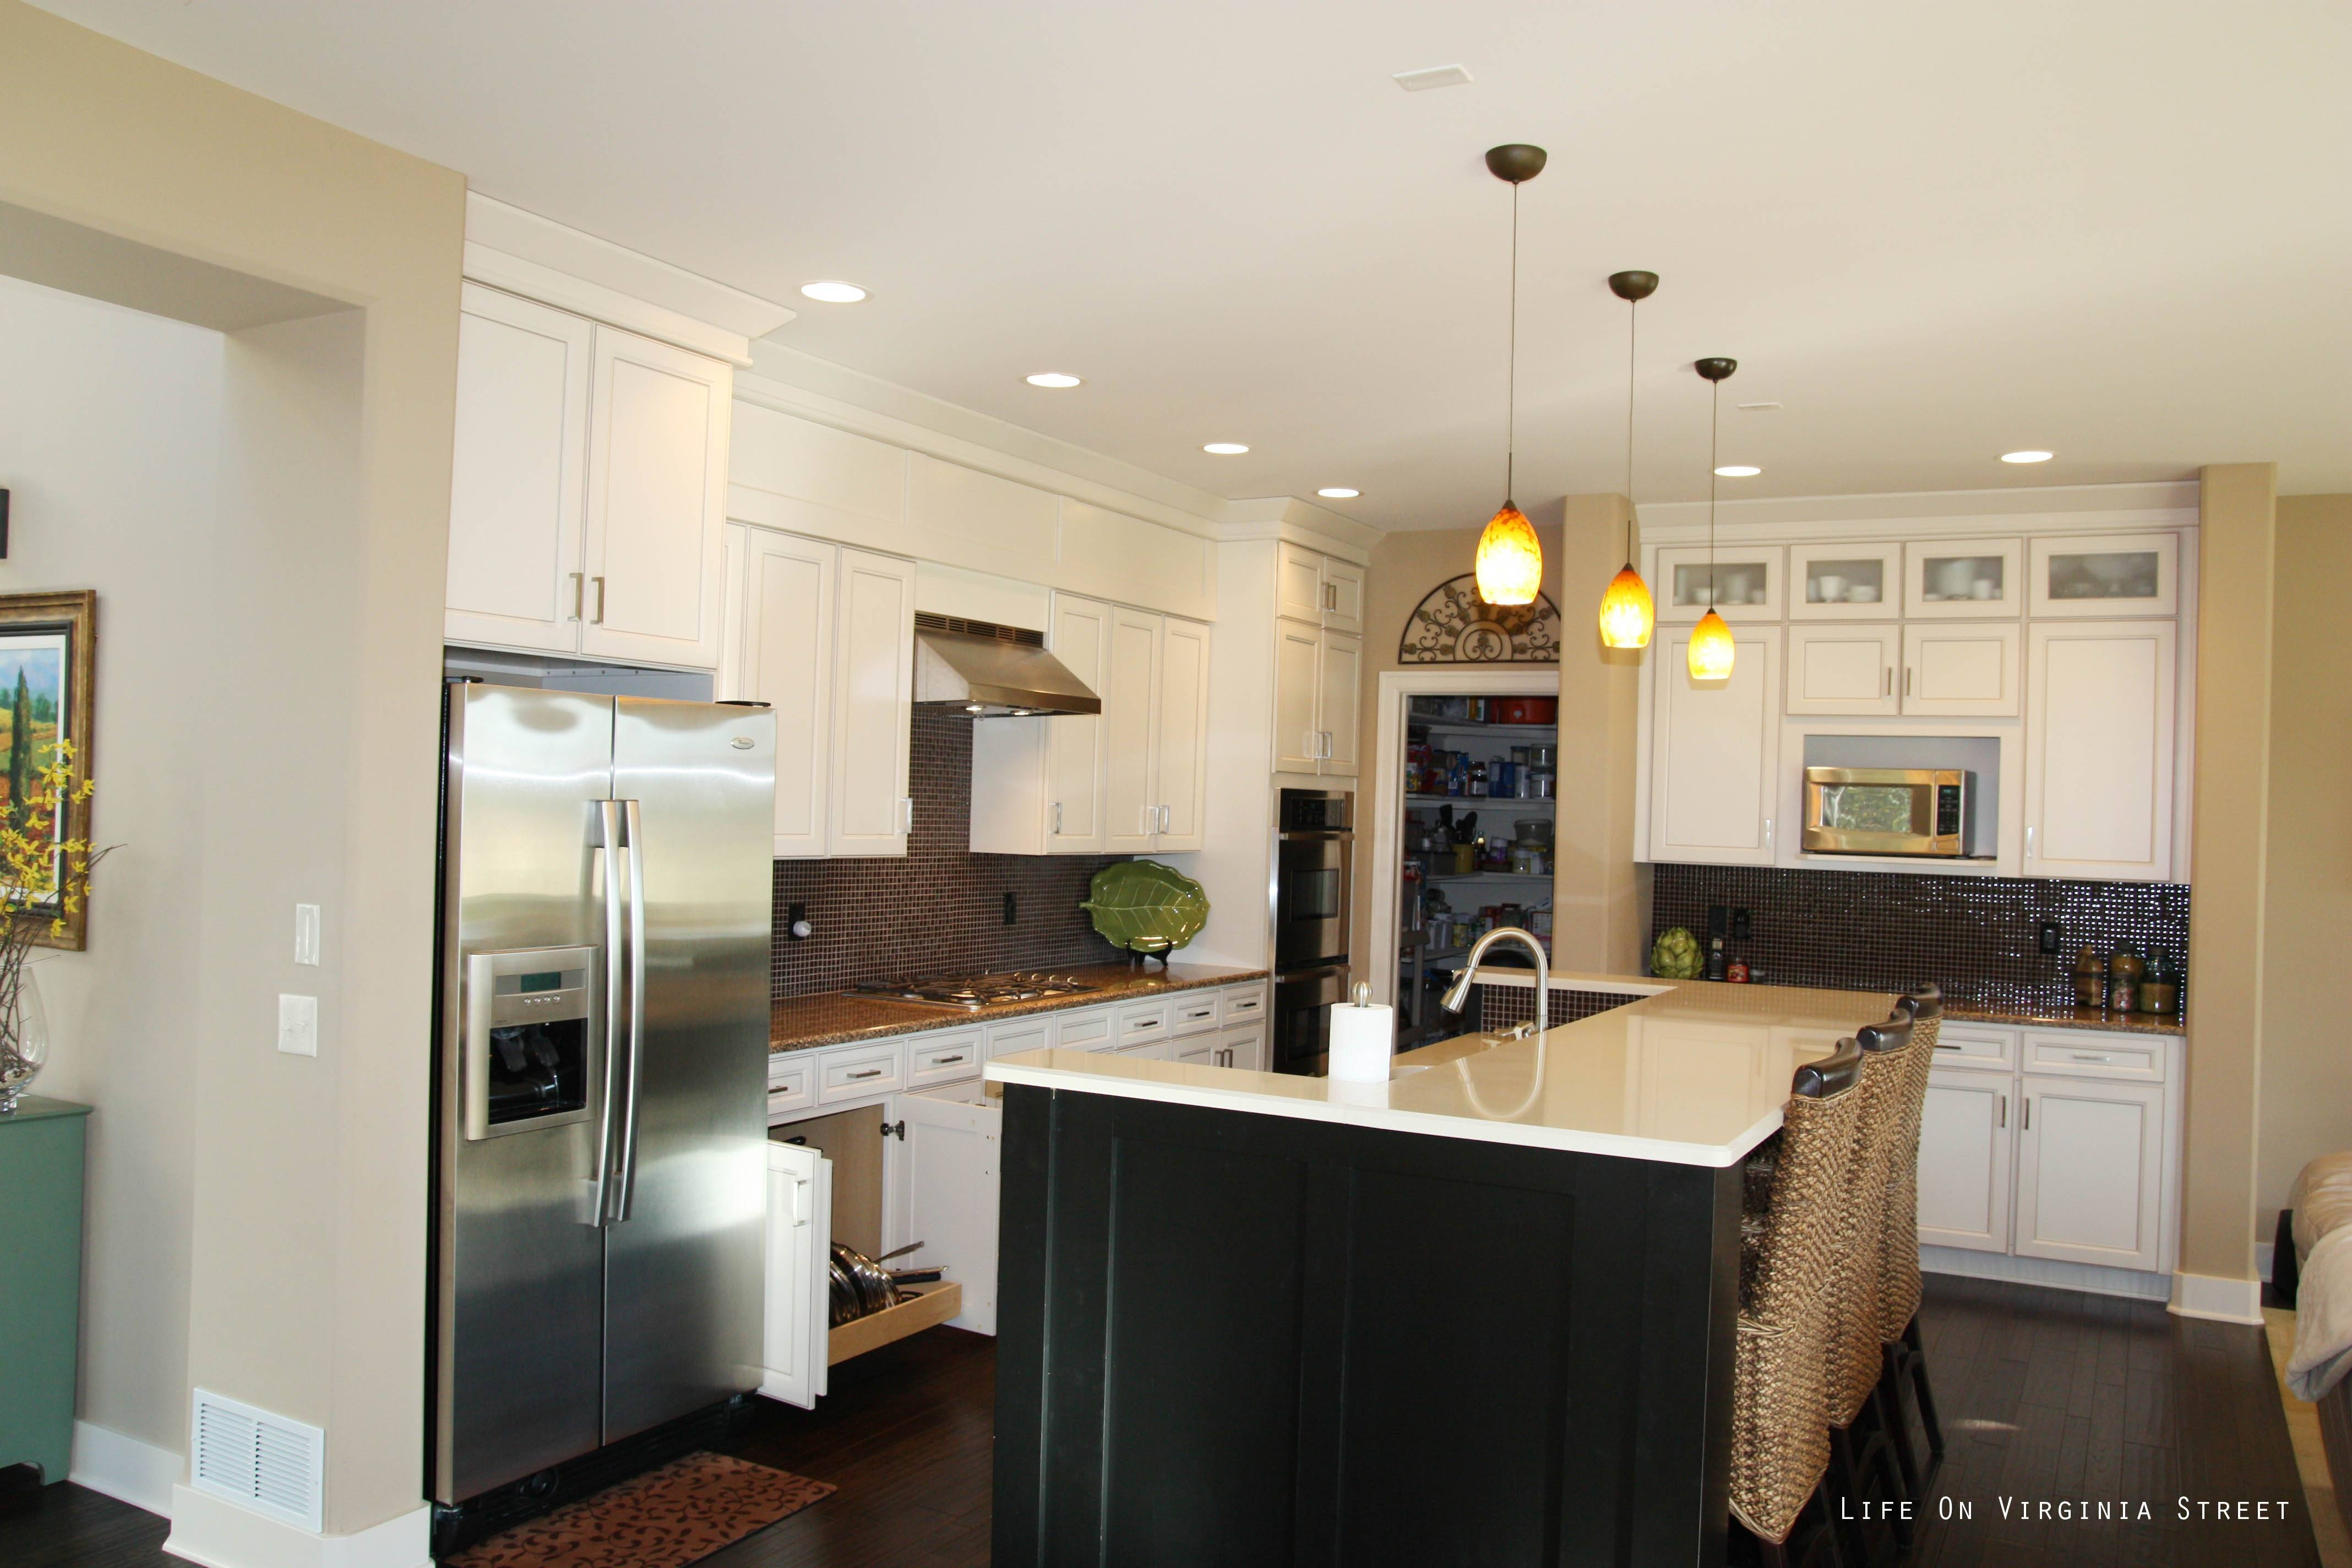 Mini Pendant Lights Over Kitchen Island – Aneilve intended for Mini Pendant Lights Over Kitchen Island (Image 12 of 15)